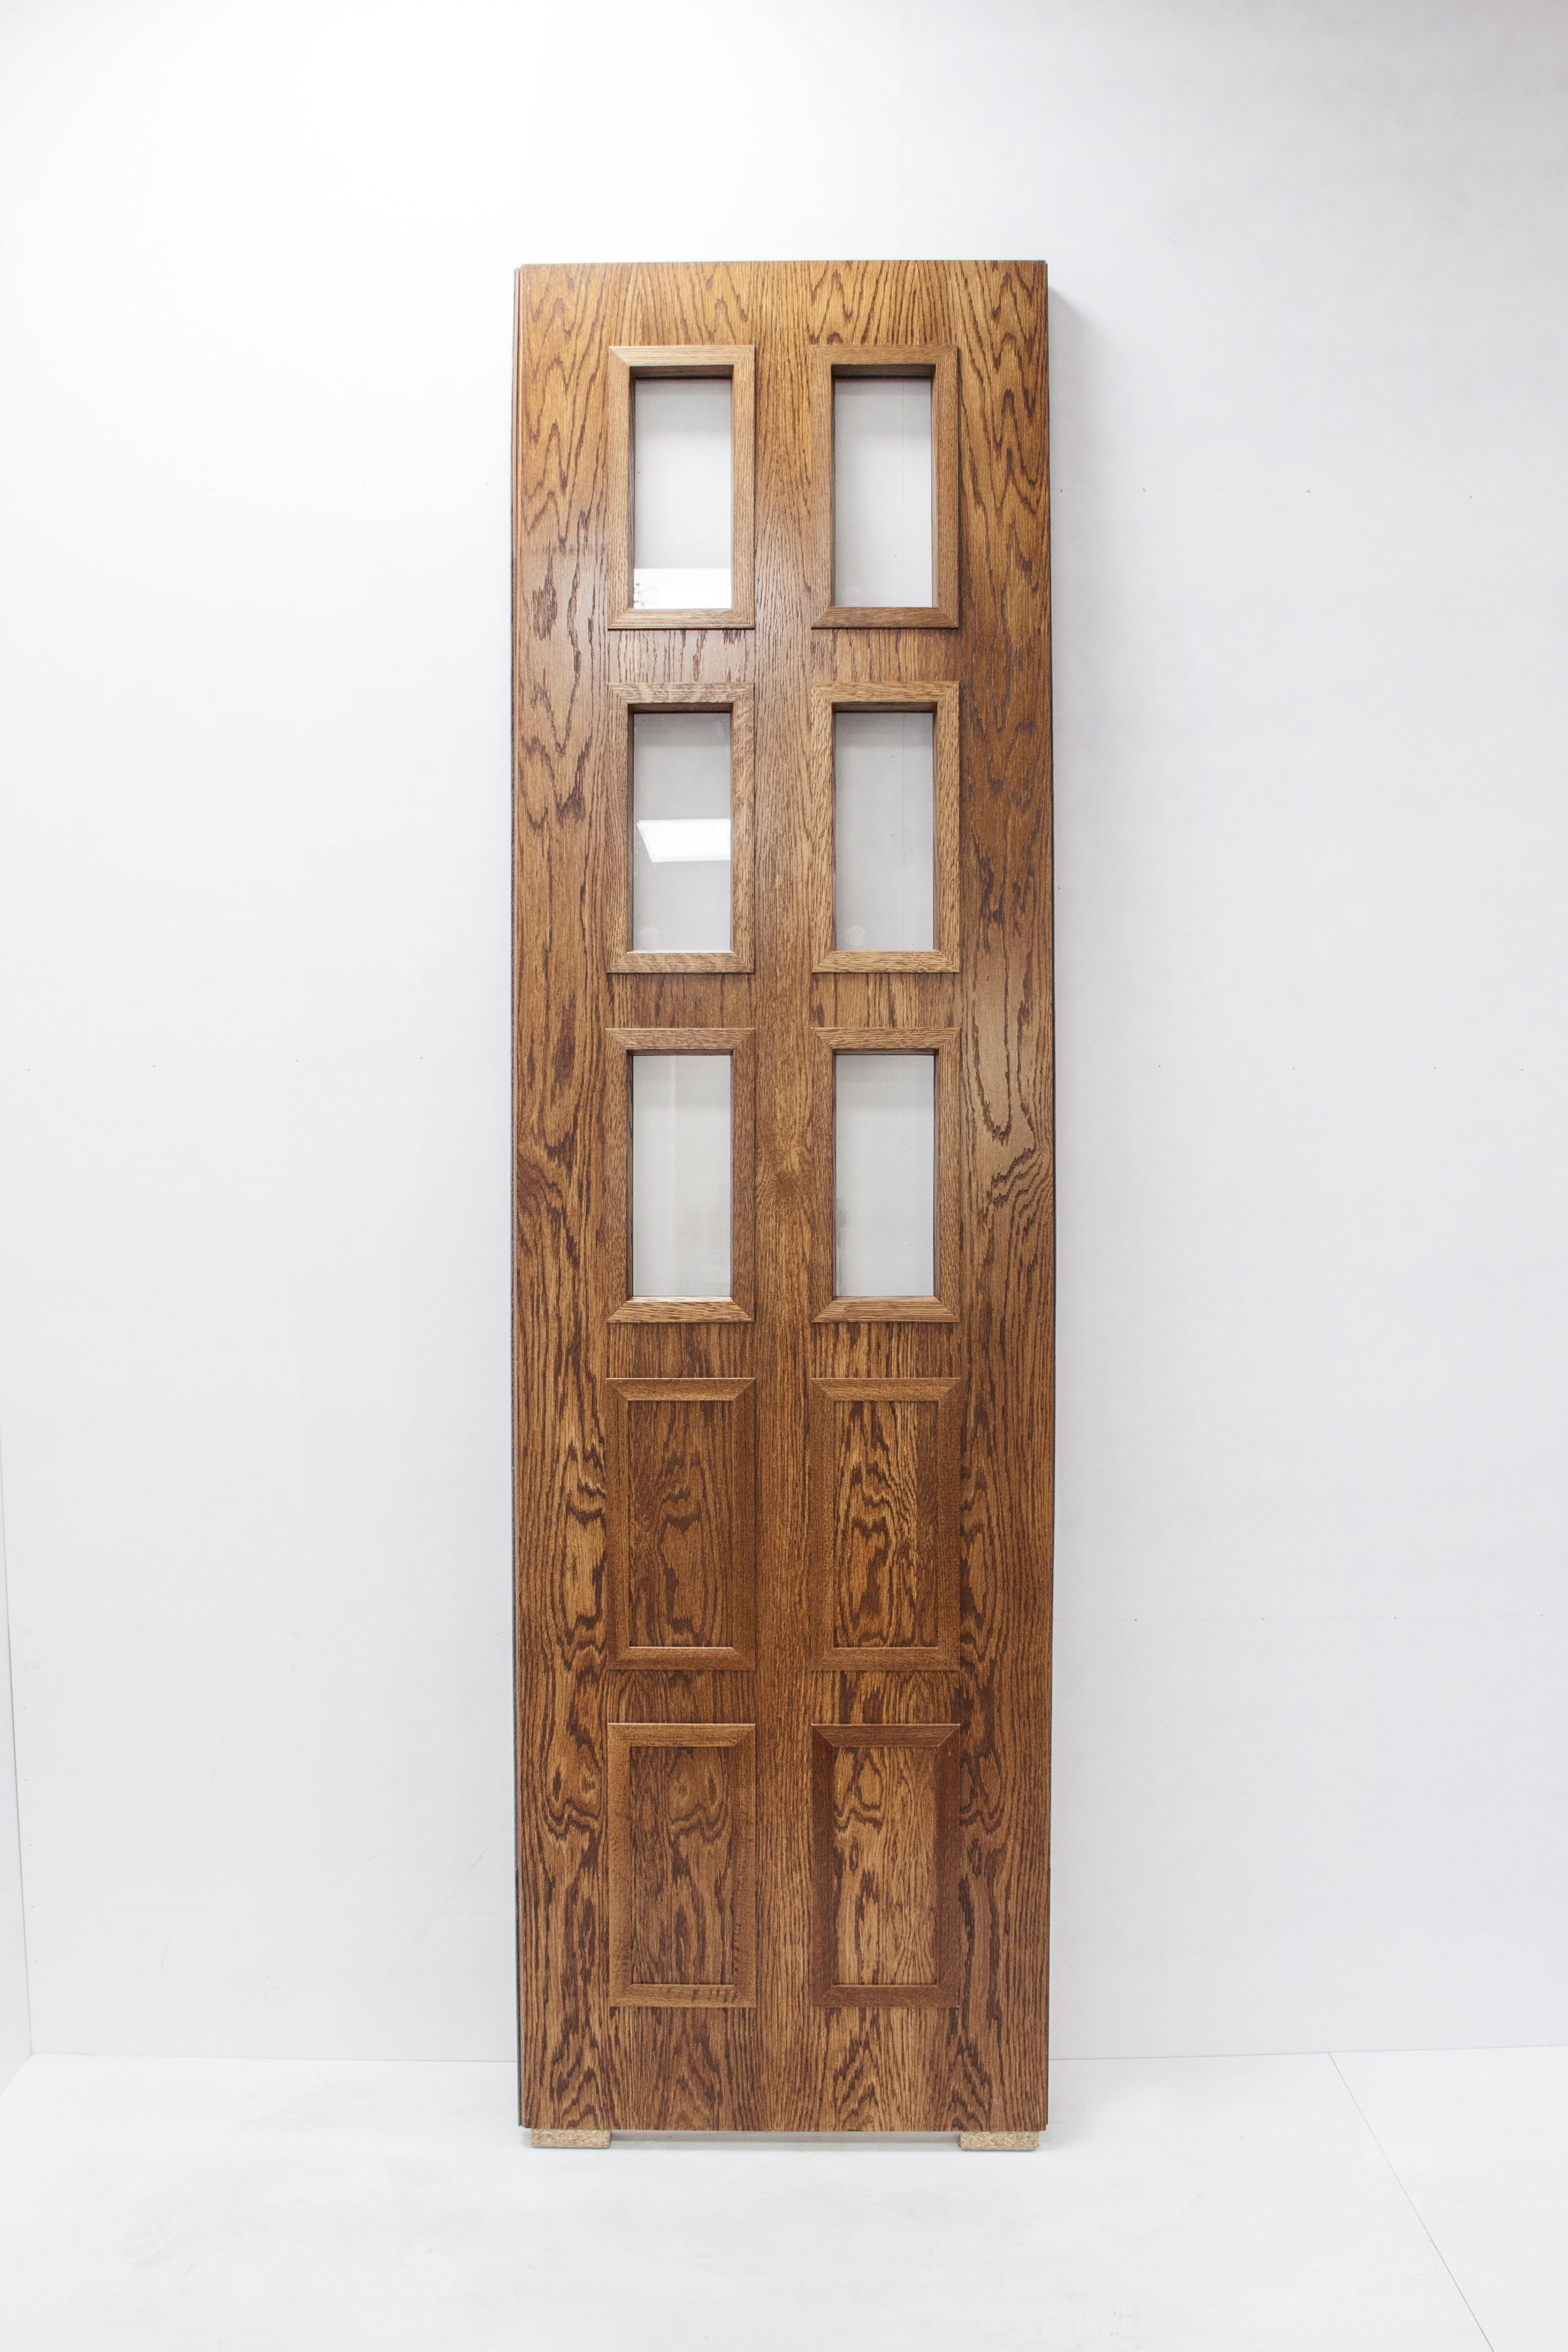 American White Oak stained fire door with vision panels